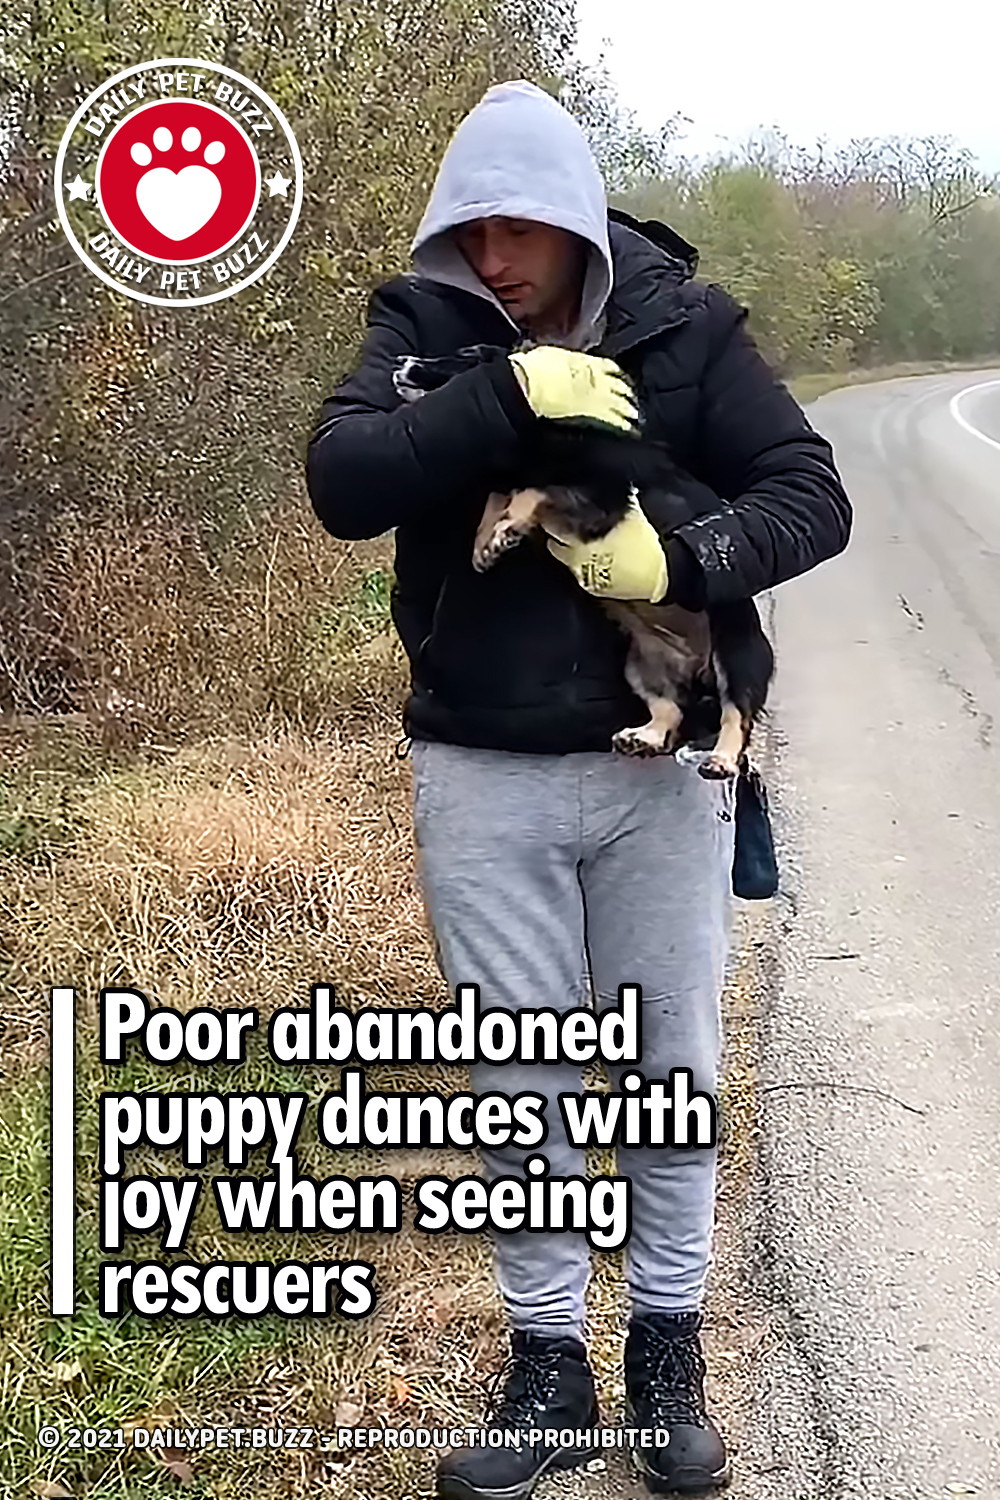 Poor abandoned puppy dances with joy when seeing rescuers